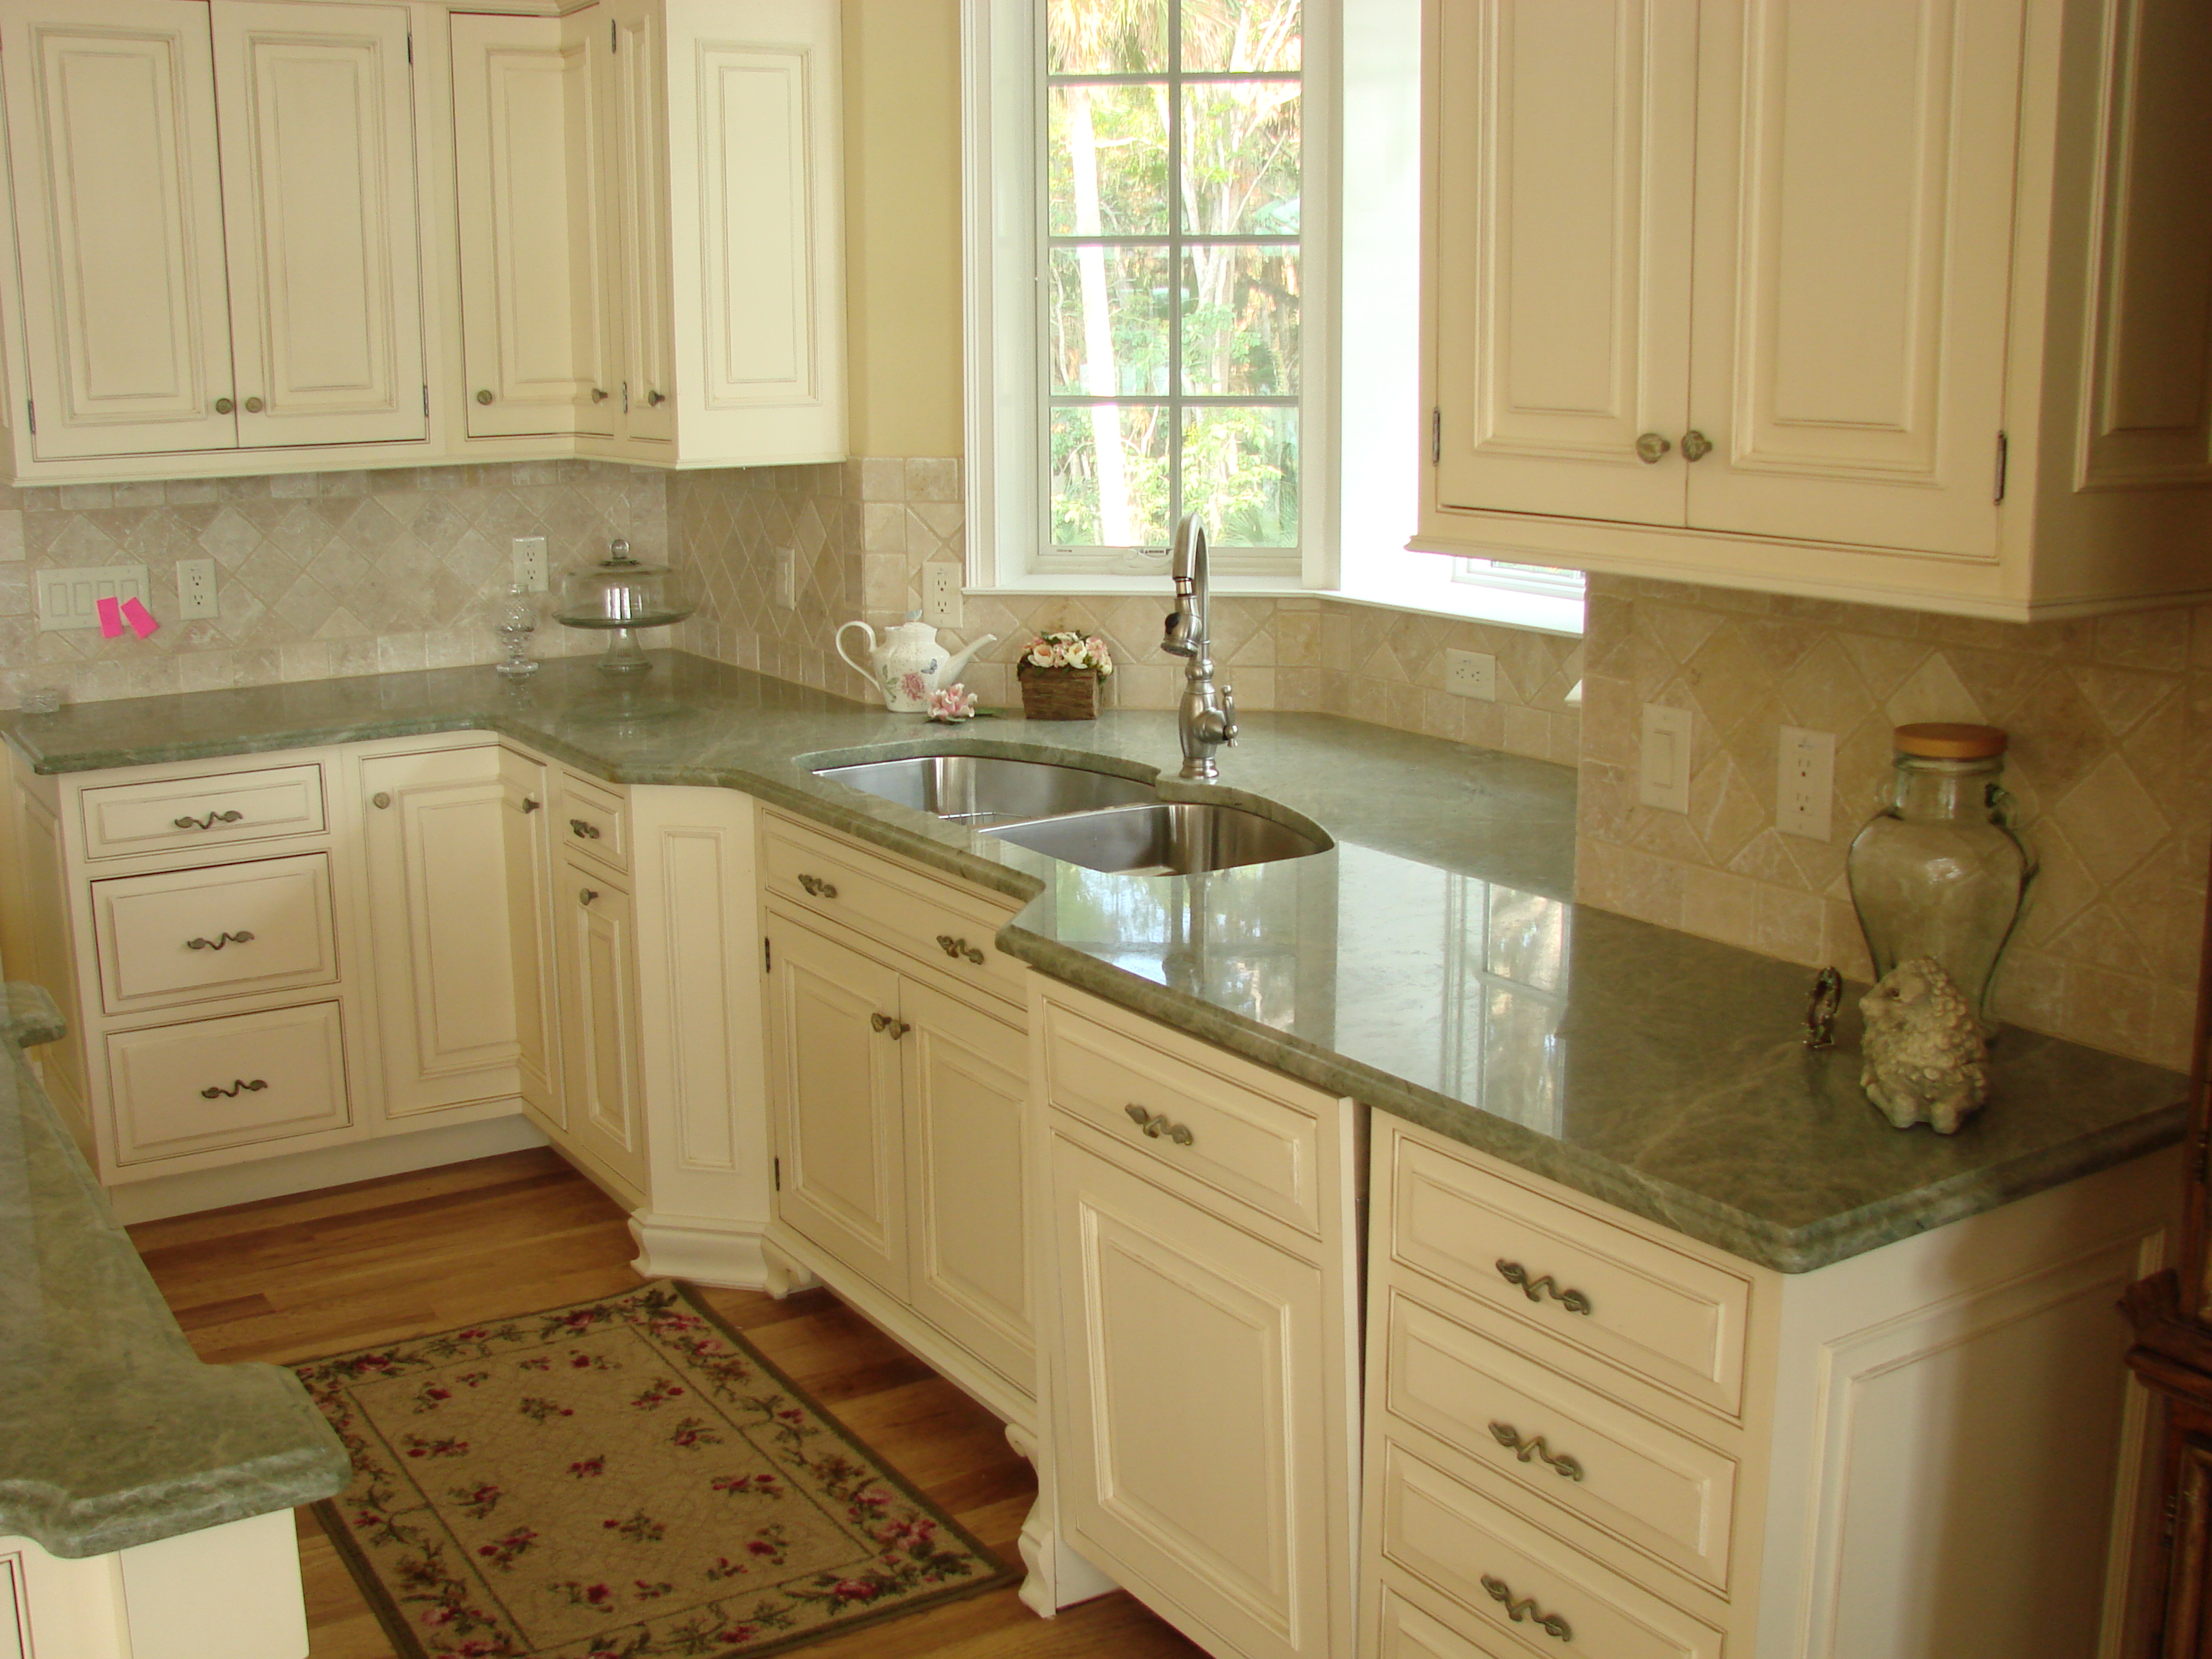 5 favorite types of granite countertops for stunning Granite kitchen countertops pictures